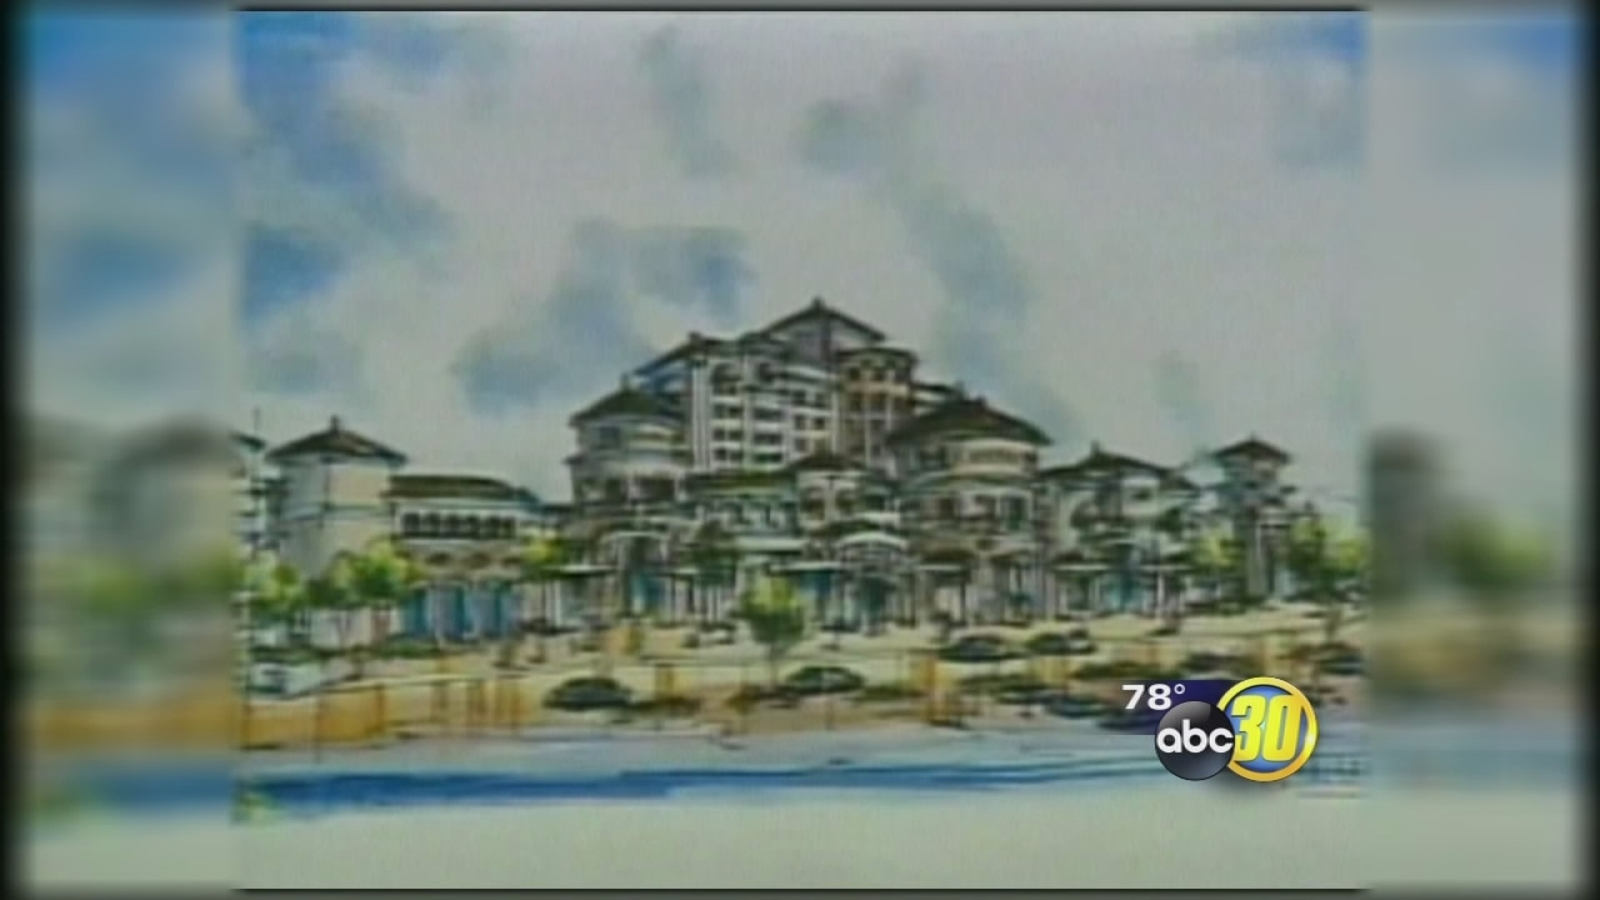 Controversial Project To Build A Casino Along Highway 99 Impacted By Court Ruling Abc30 Fresno